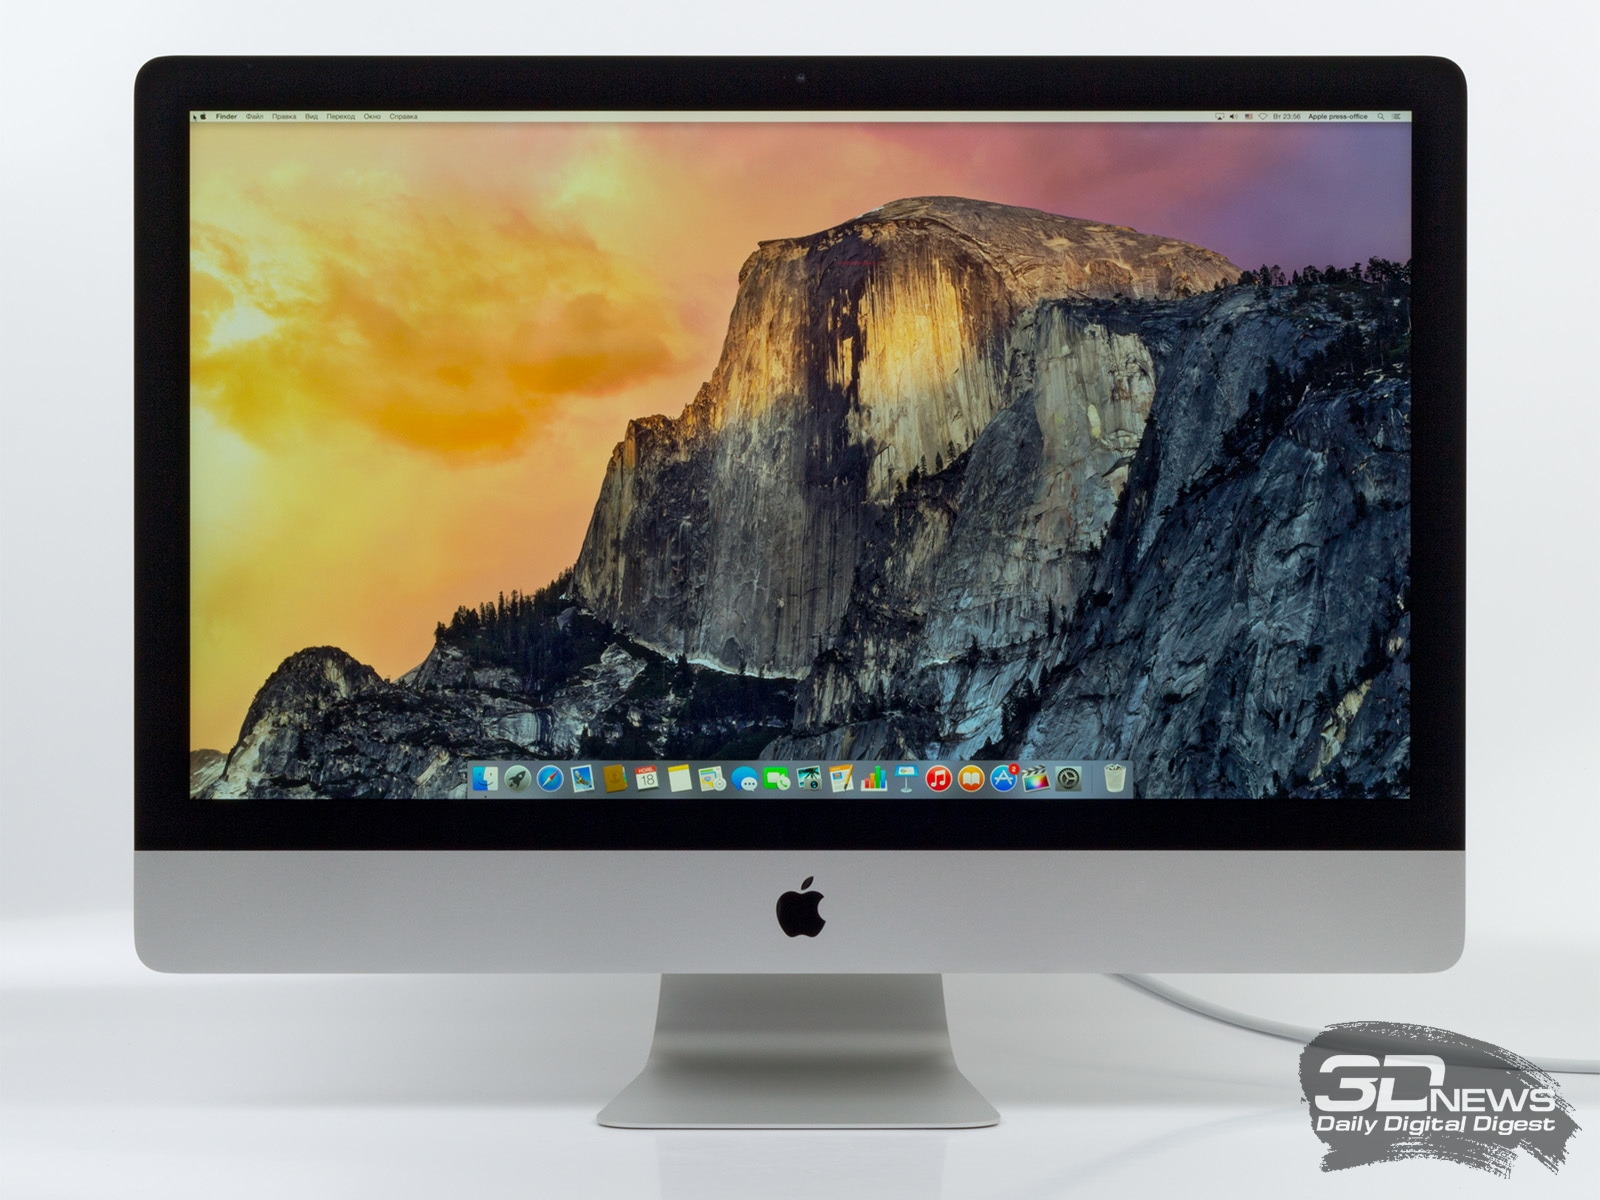 imac technical specifications apple - HD 1200×800